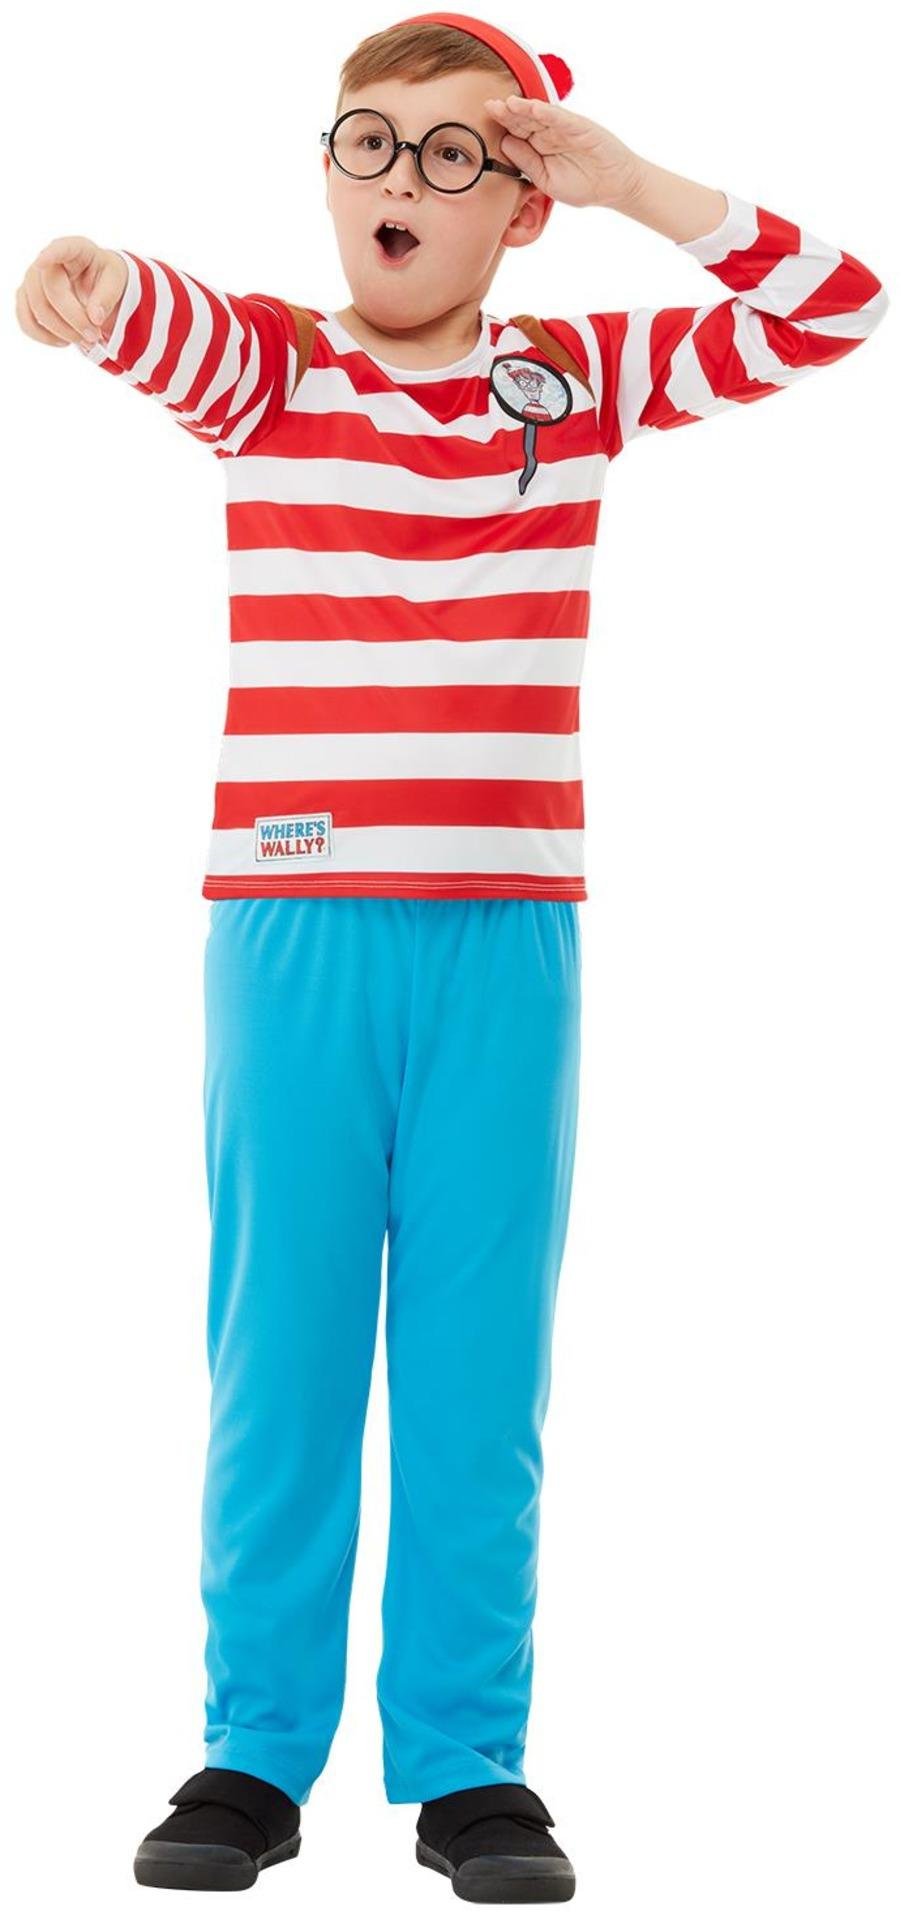 Kids Deluxe Where's Wally Costume